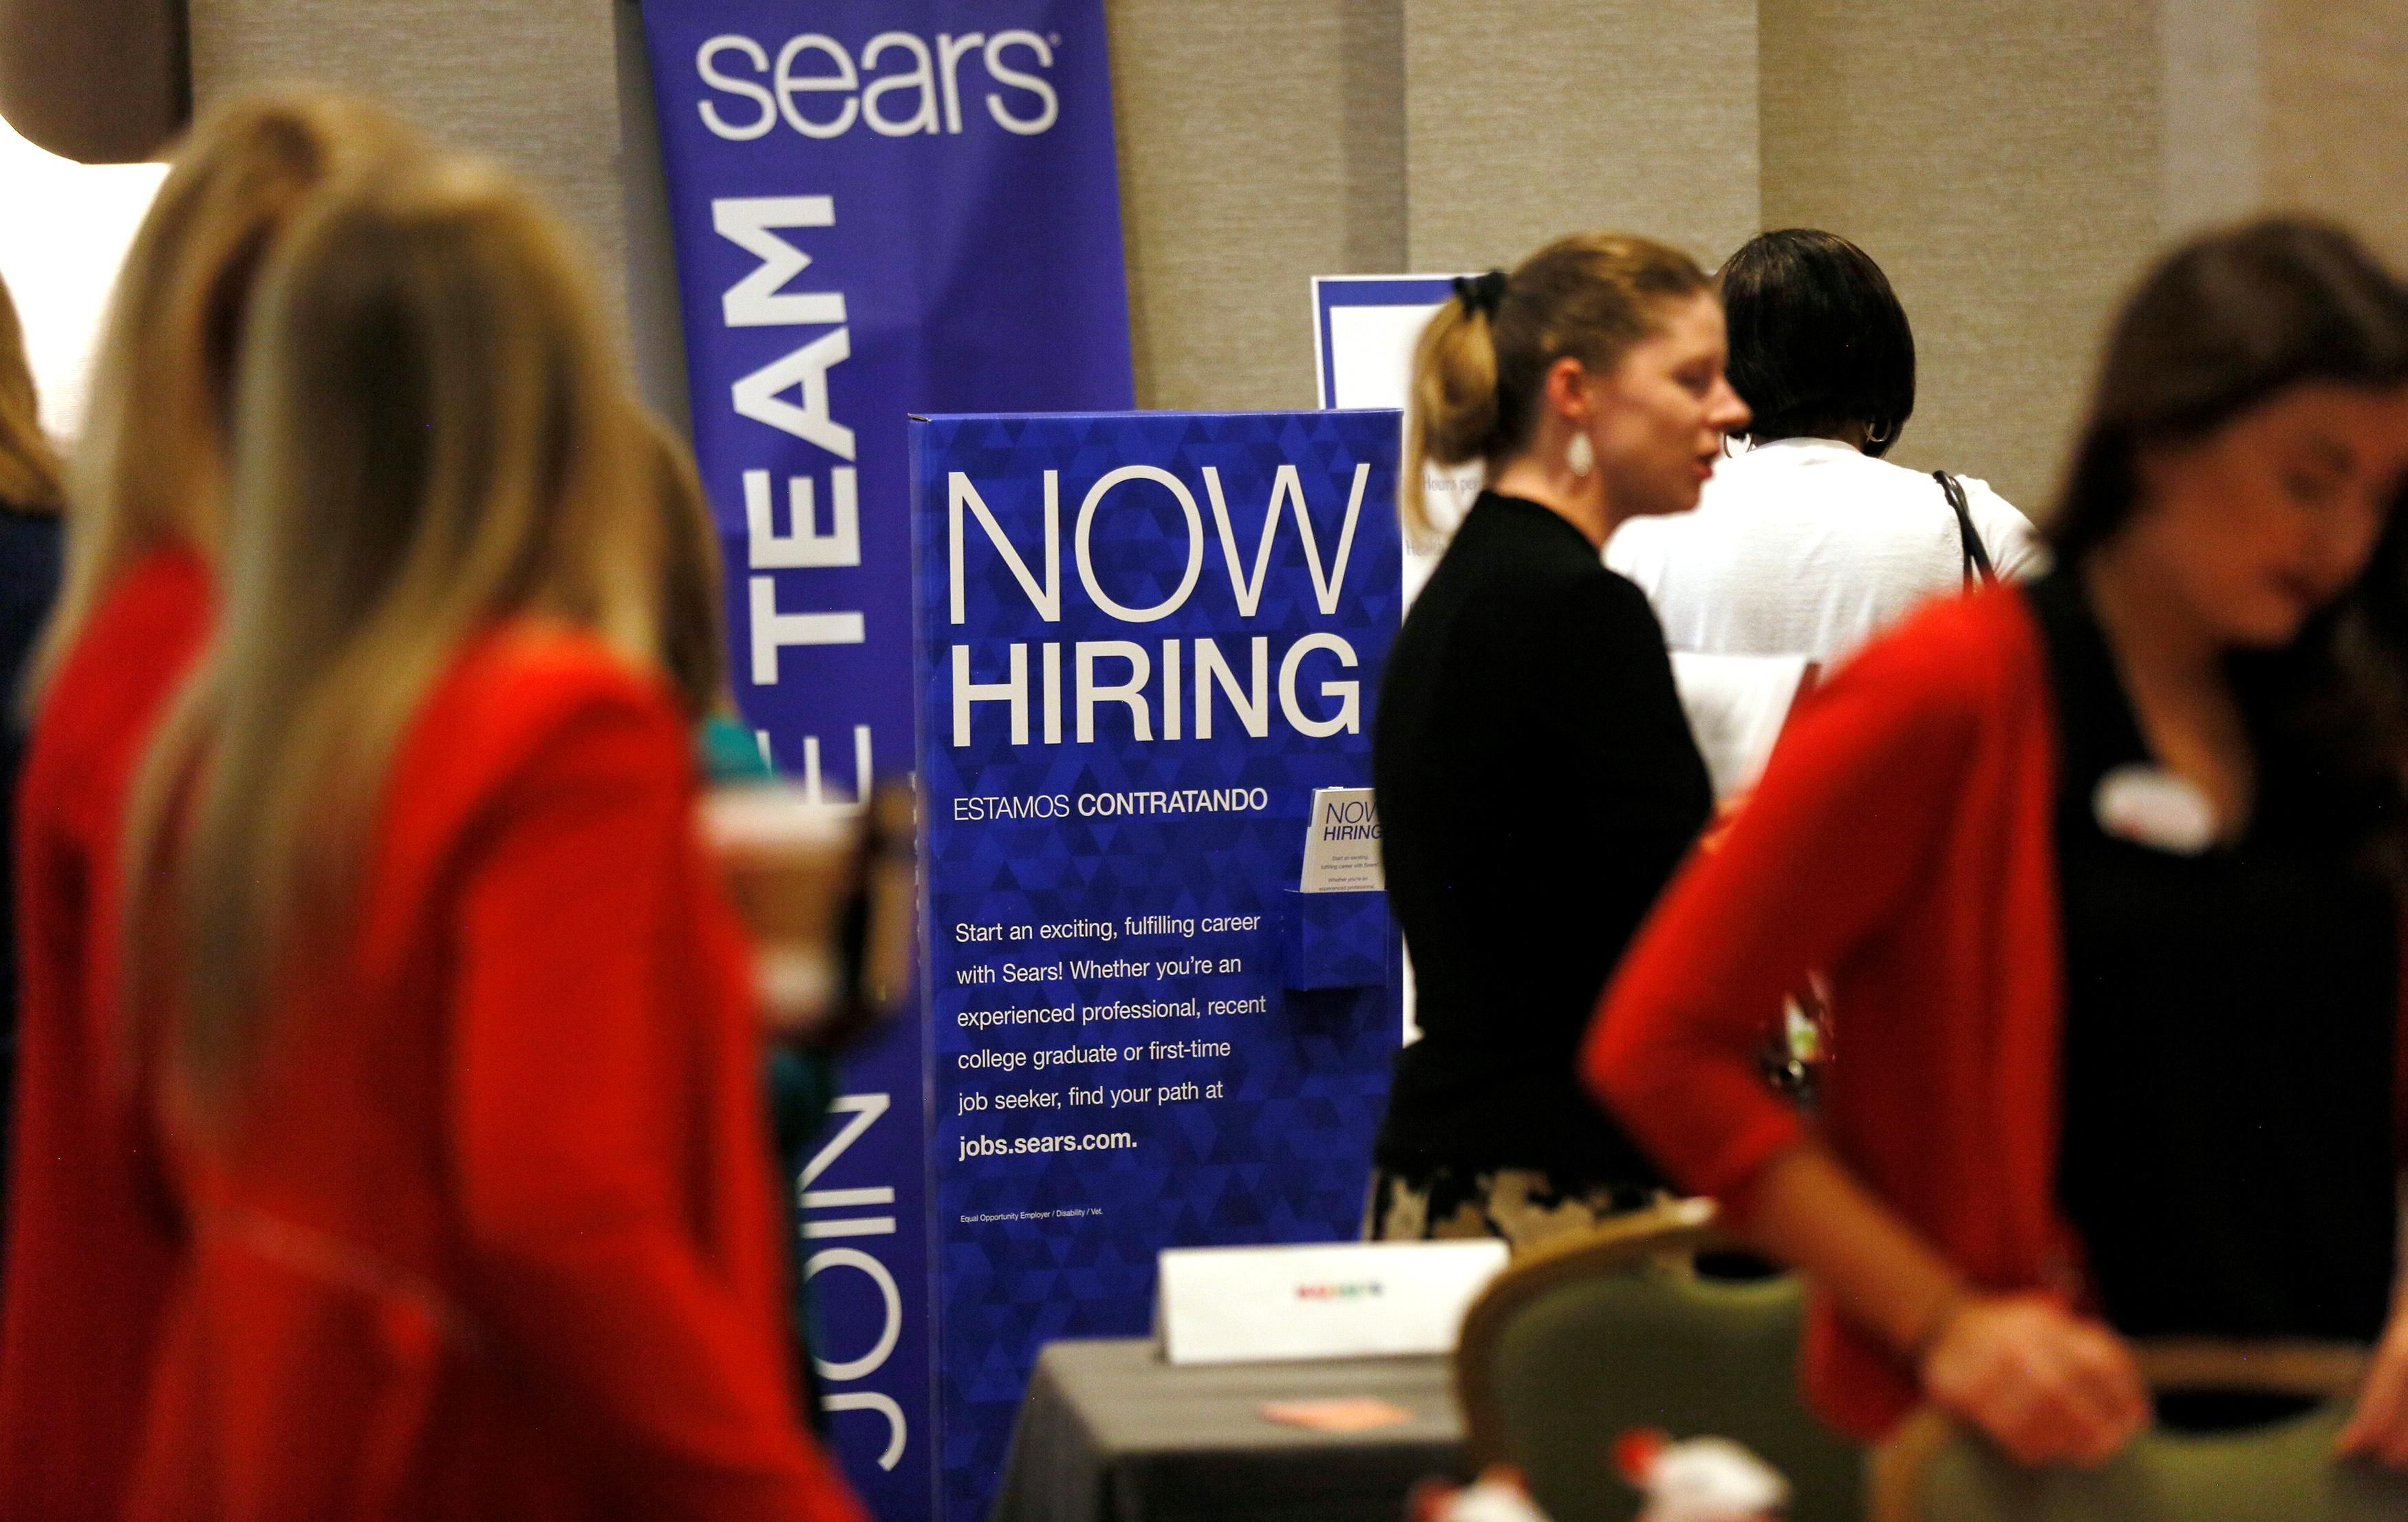 Unemployment Rate Hits 3 5 Job Growth Moderate Marketing Jobs Job Opening Supply Management